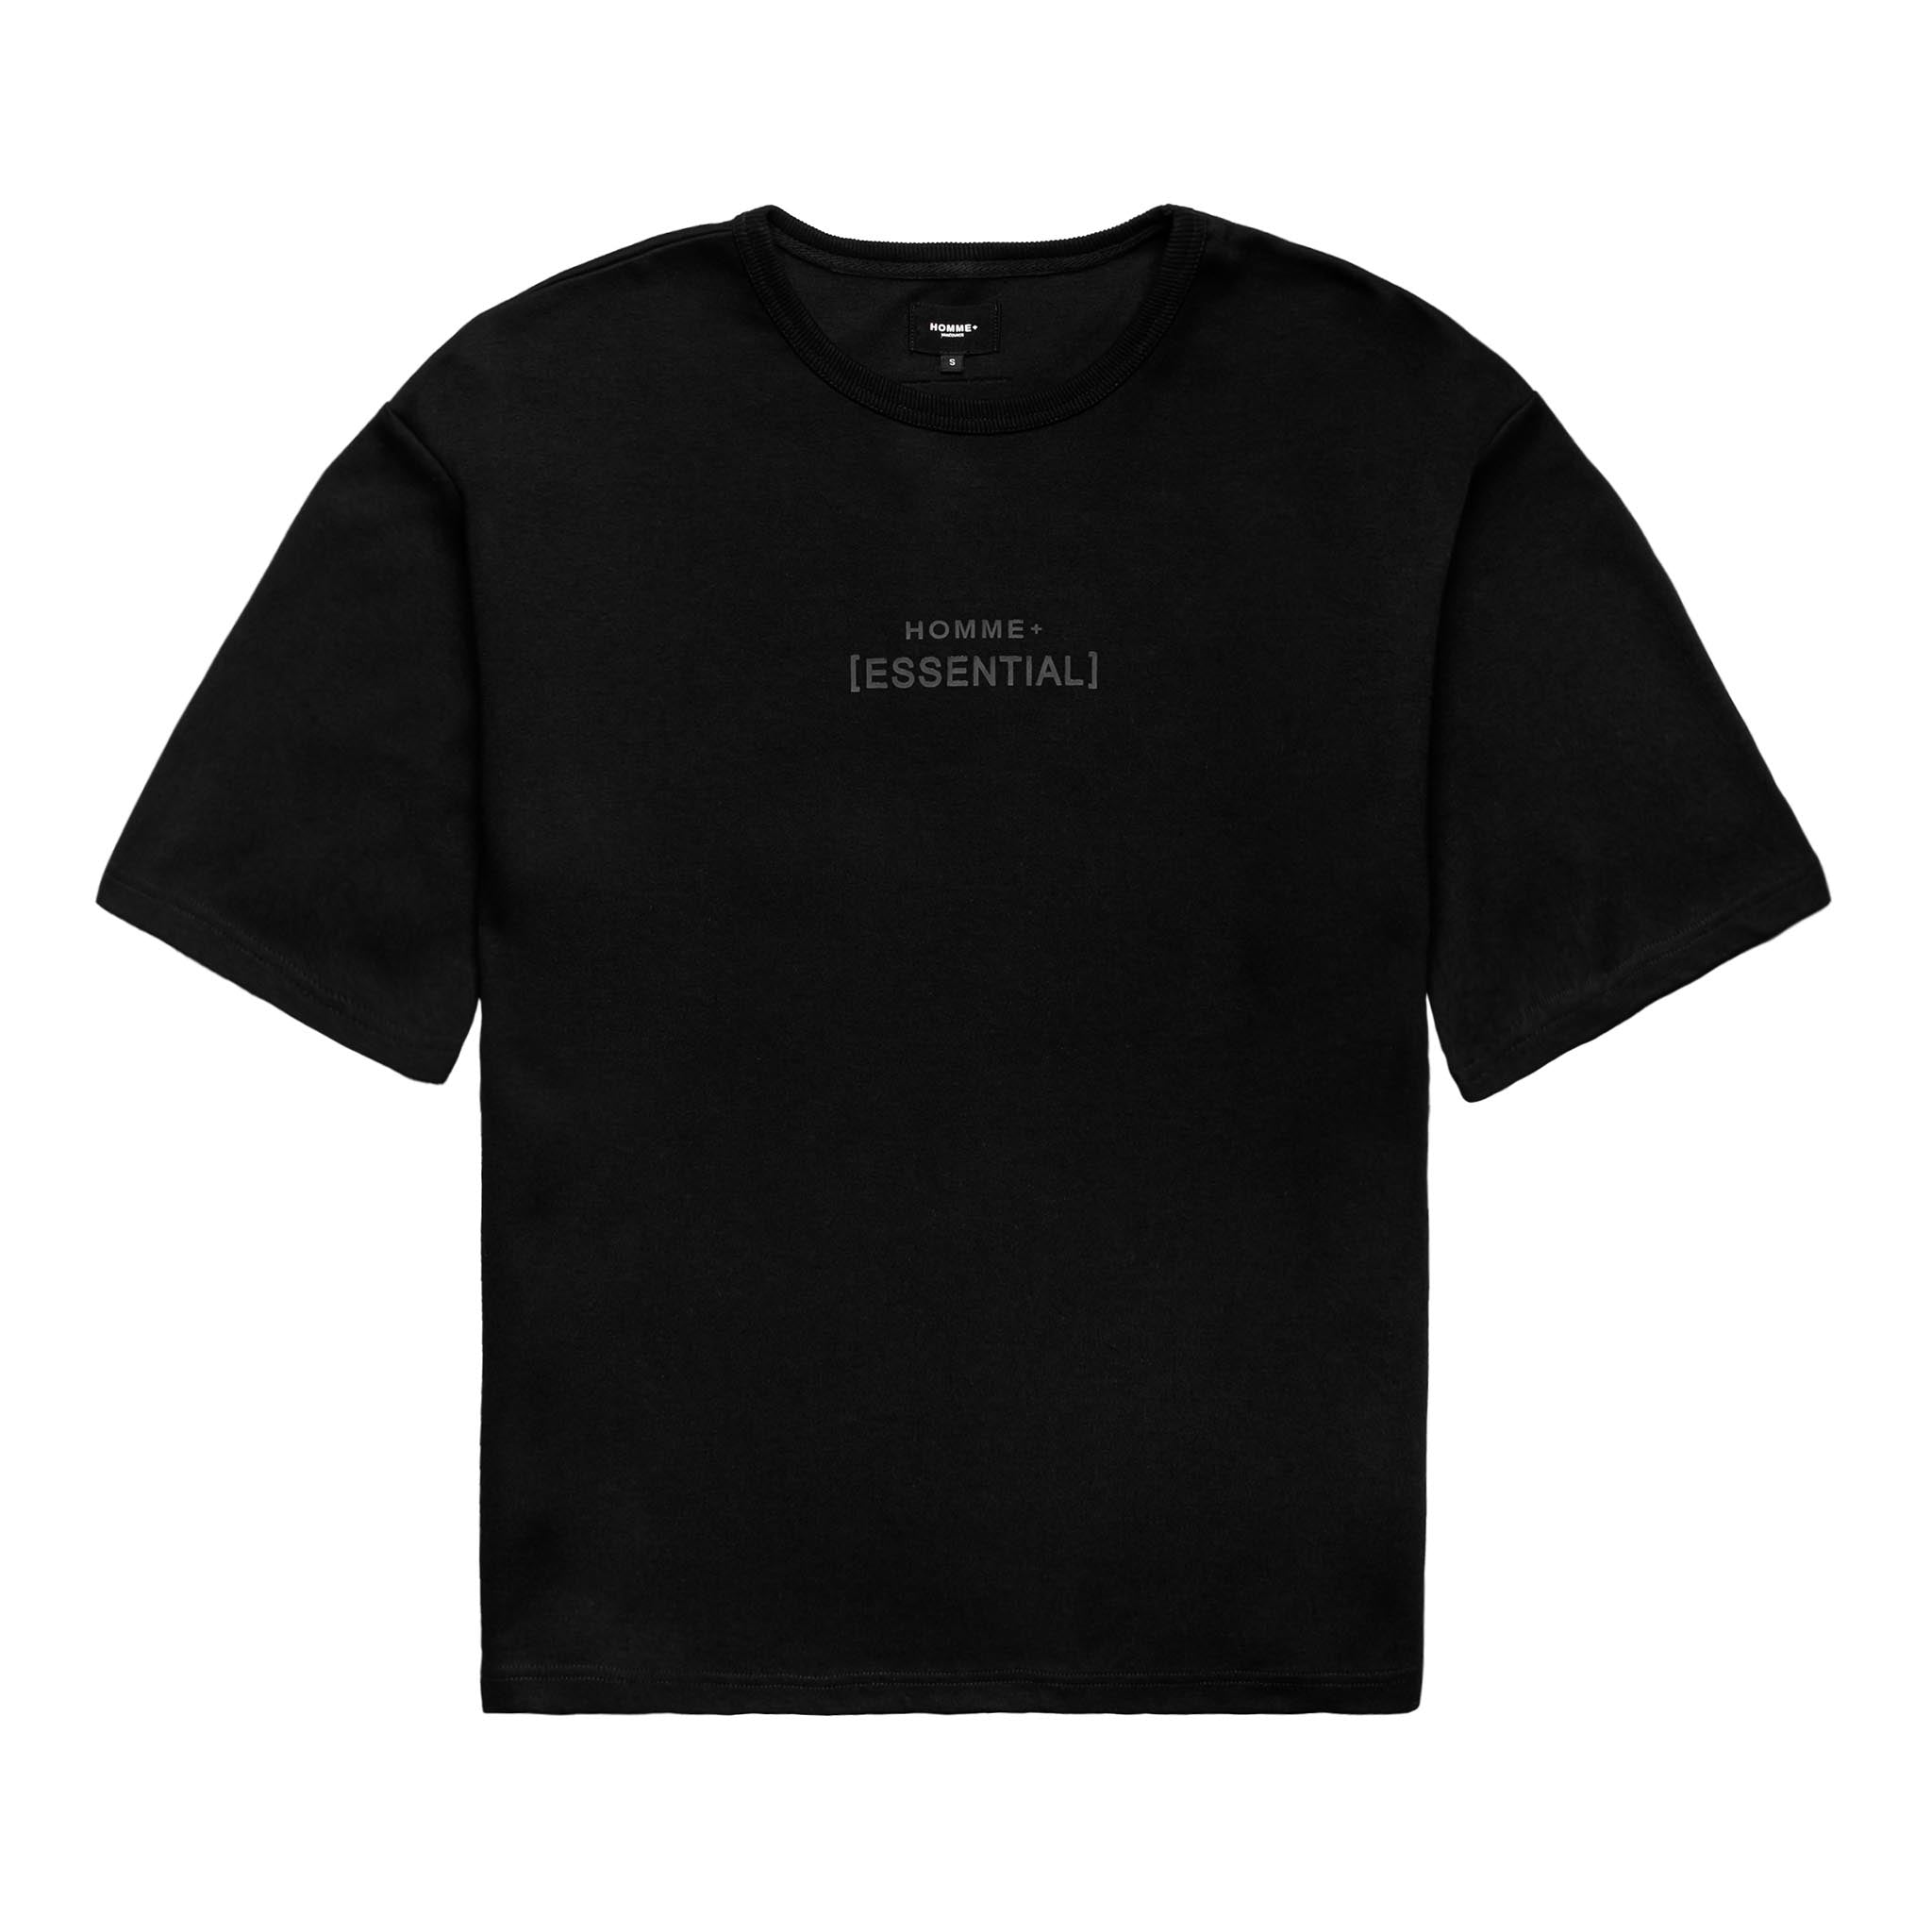 HOMME+ 'ESSENTIAL' Heavyweight Boxy Tee Black/Black